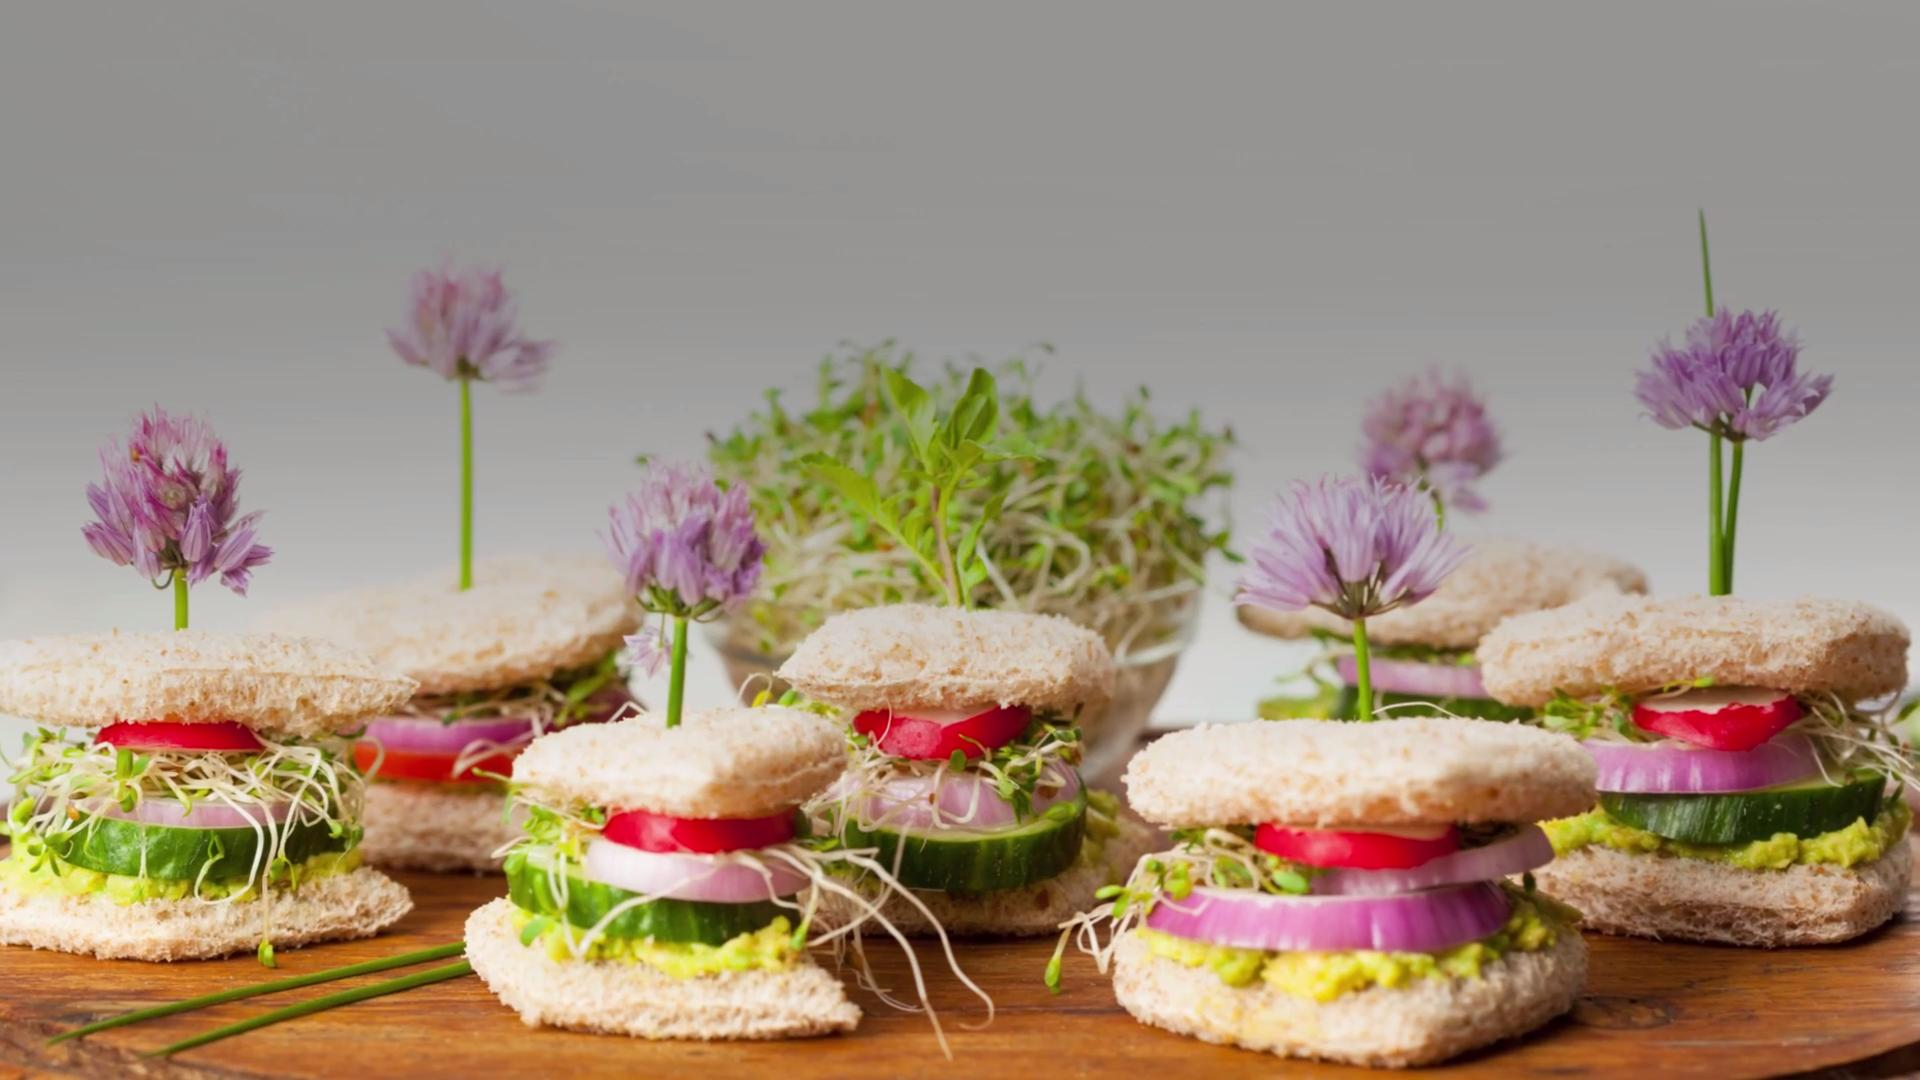 Chive Blossoms Are So Underrated—Here's What to Do With Them